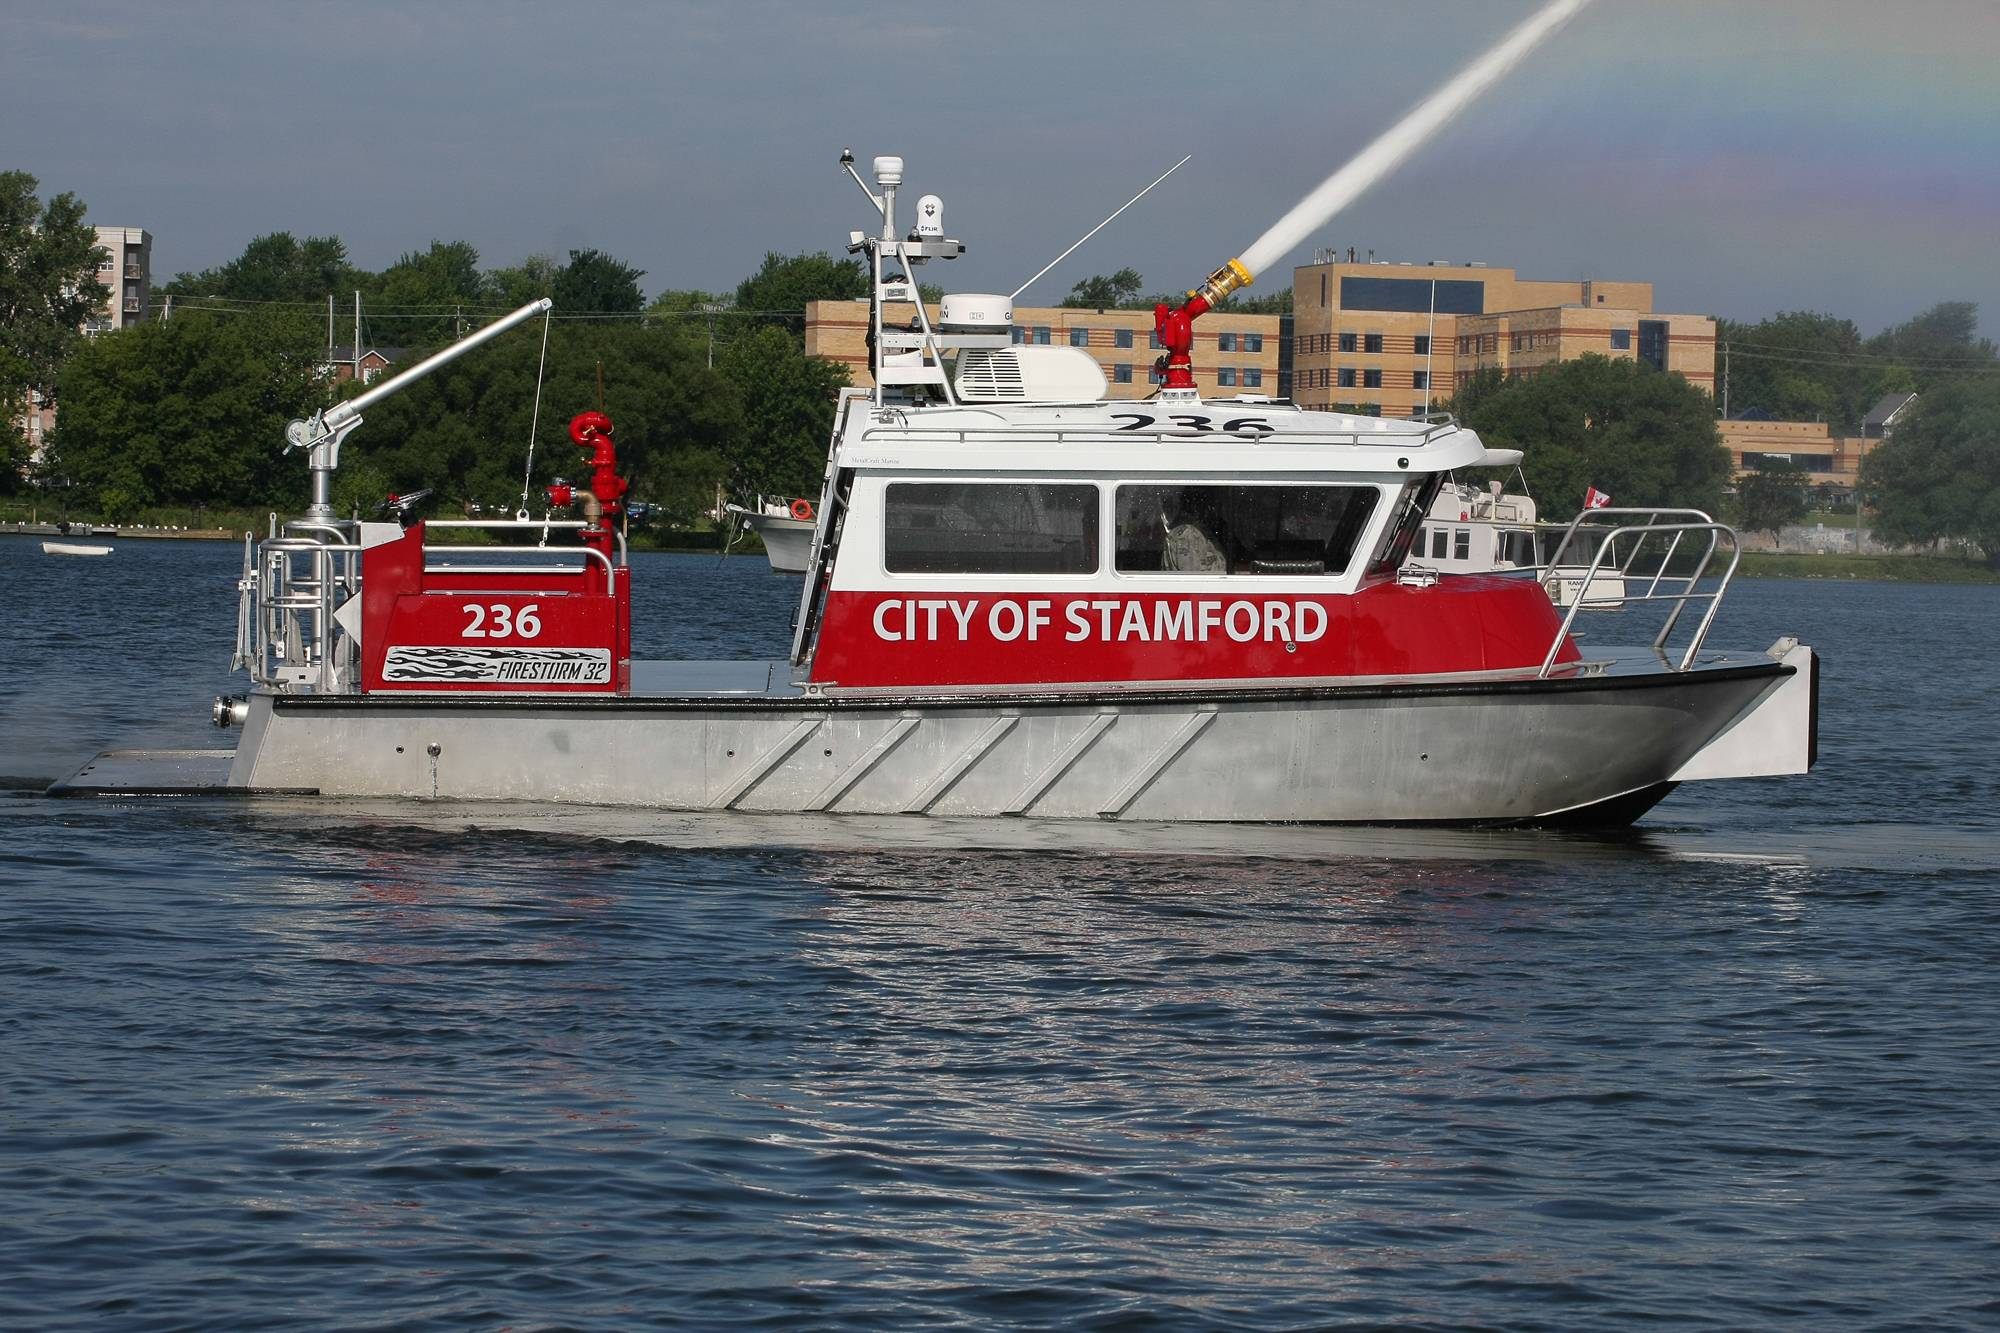 History of Stamford Fire Apparatus – Stamford Fire Department